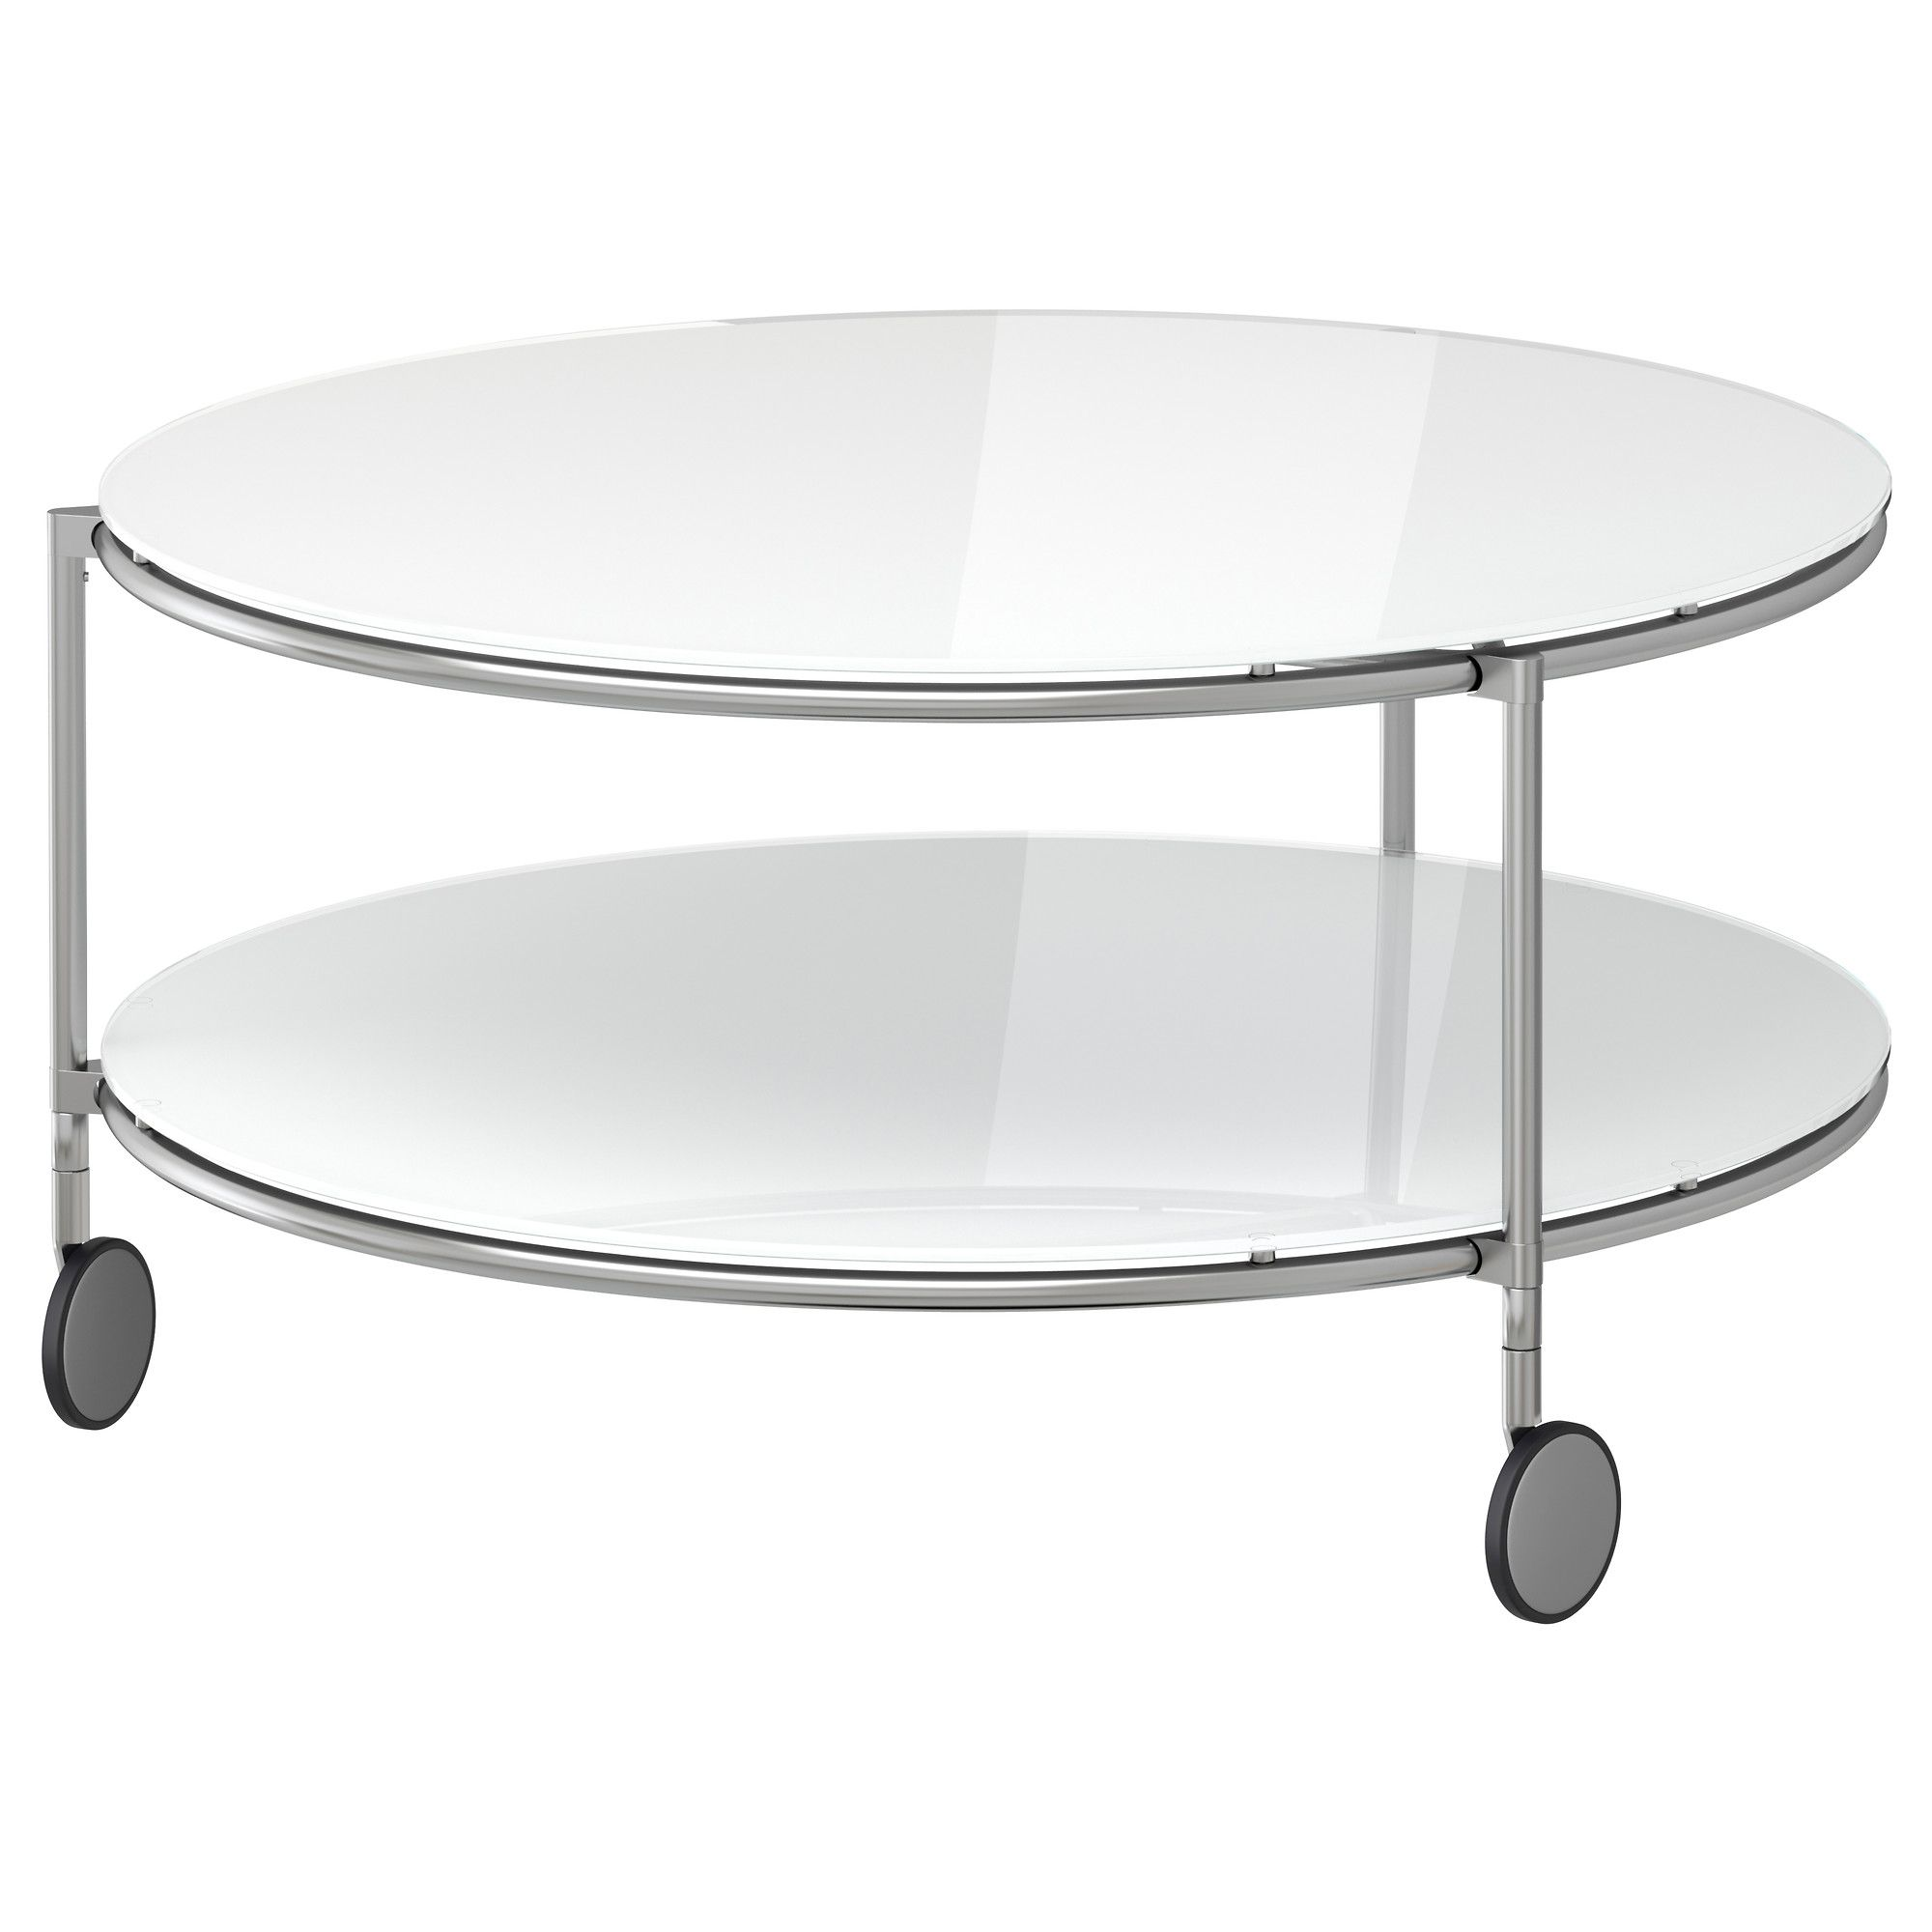 Merveilleux IKEA   STRIND, Coffee Table, , Separate Shelf For Magazines, Etc. Helps You  Keep Your Things Organized And The Table Top Clear.The Casters Make It Easy  To ...